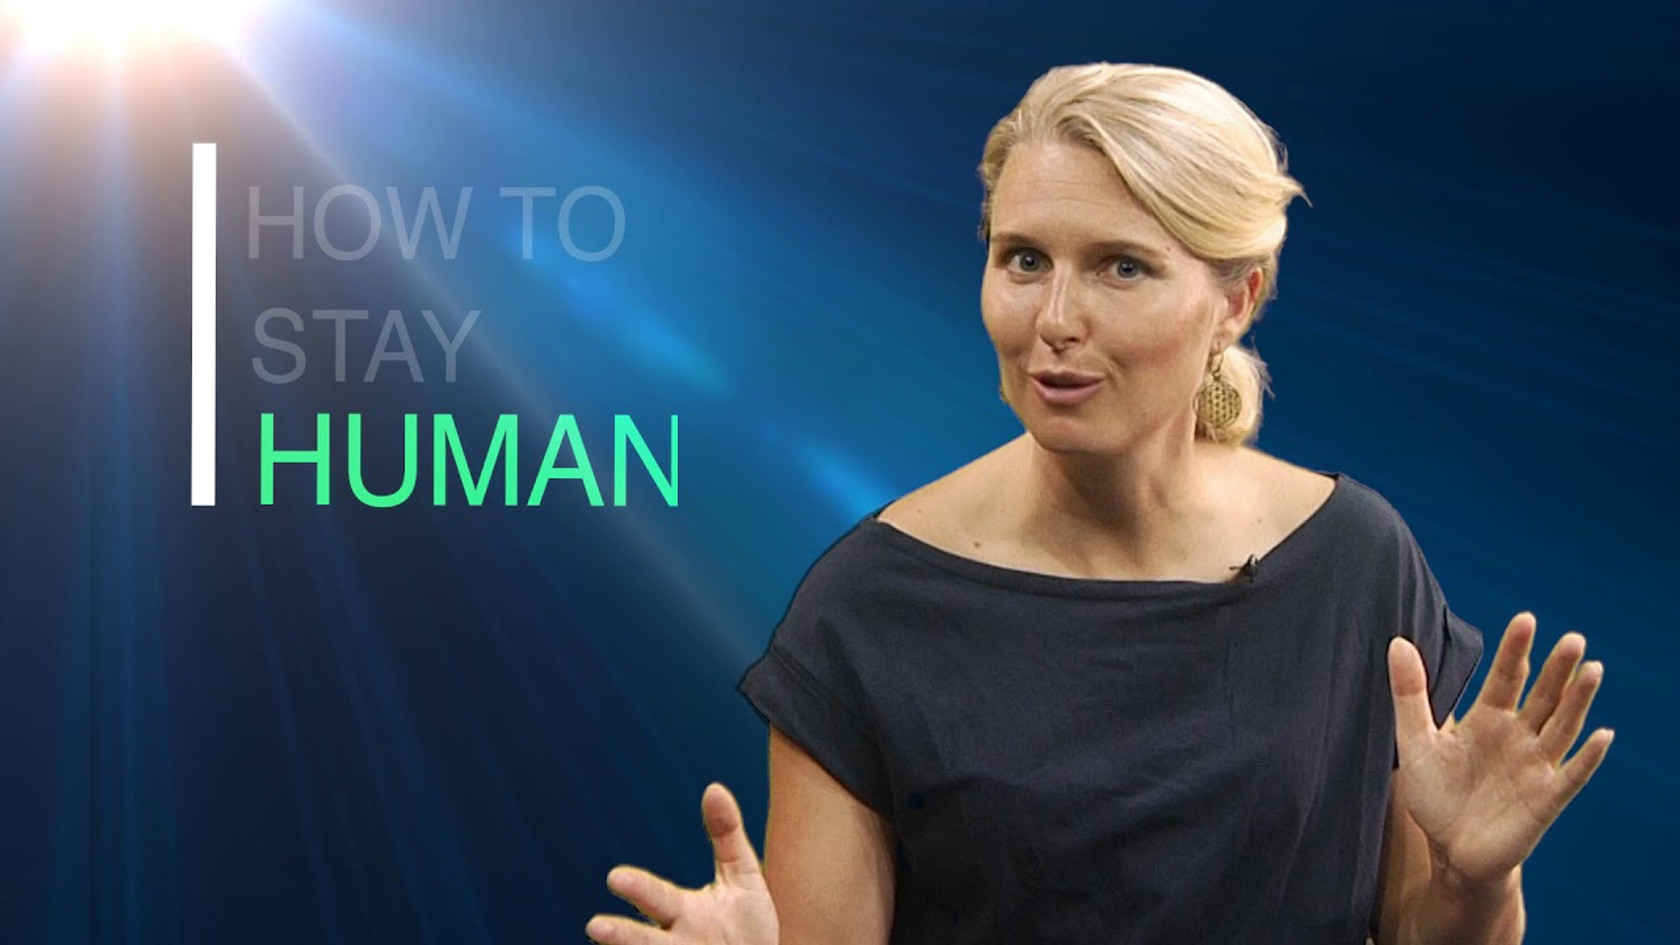 How to stay human?